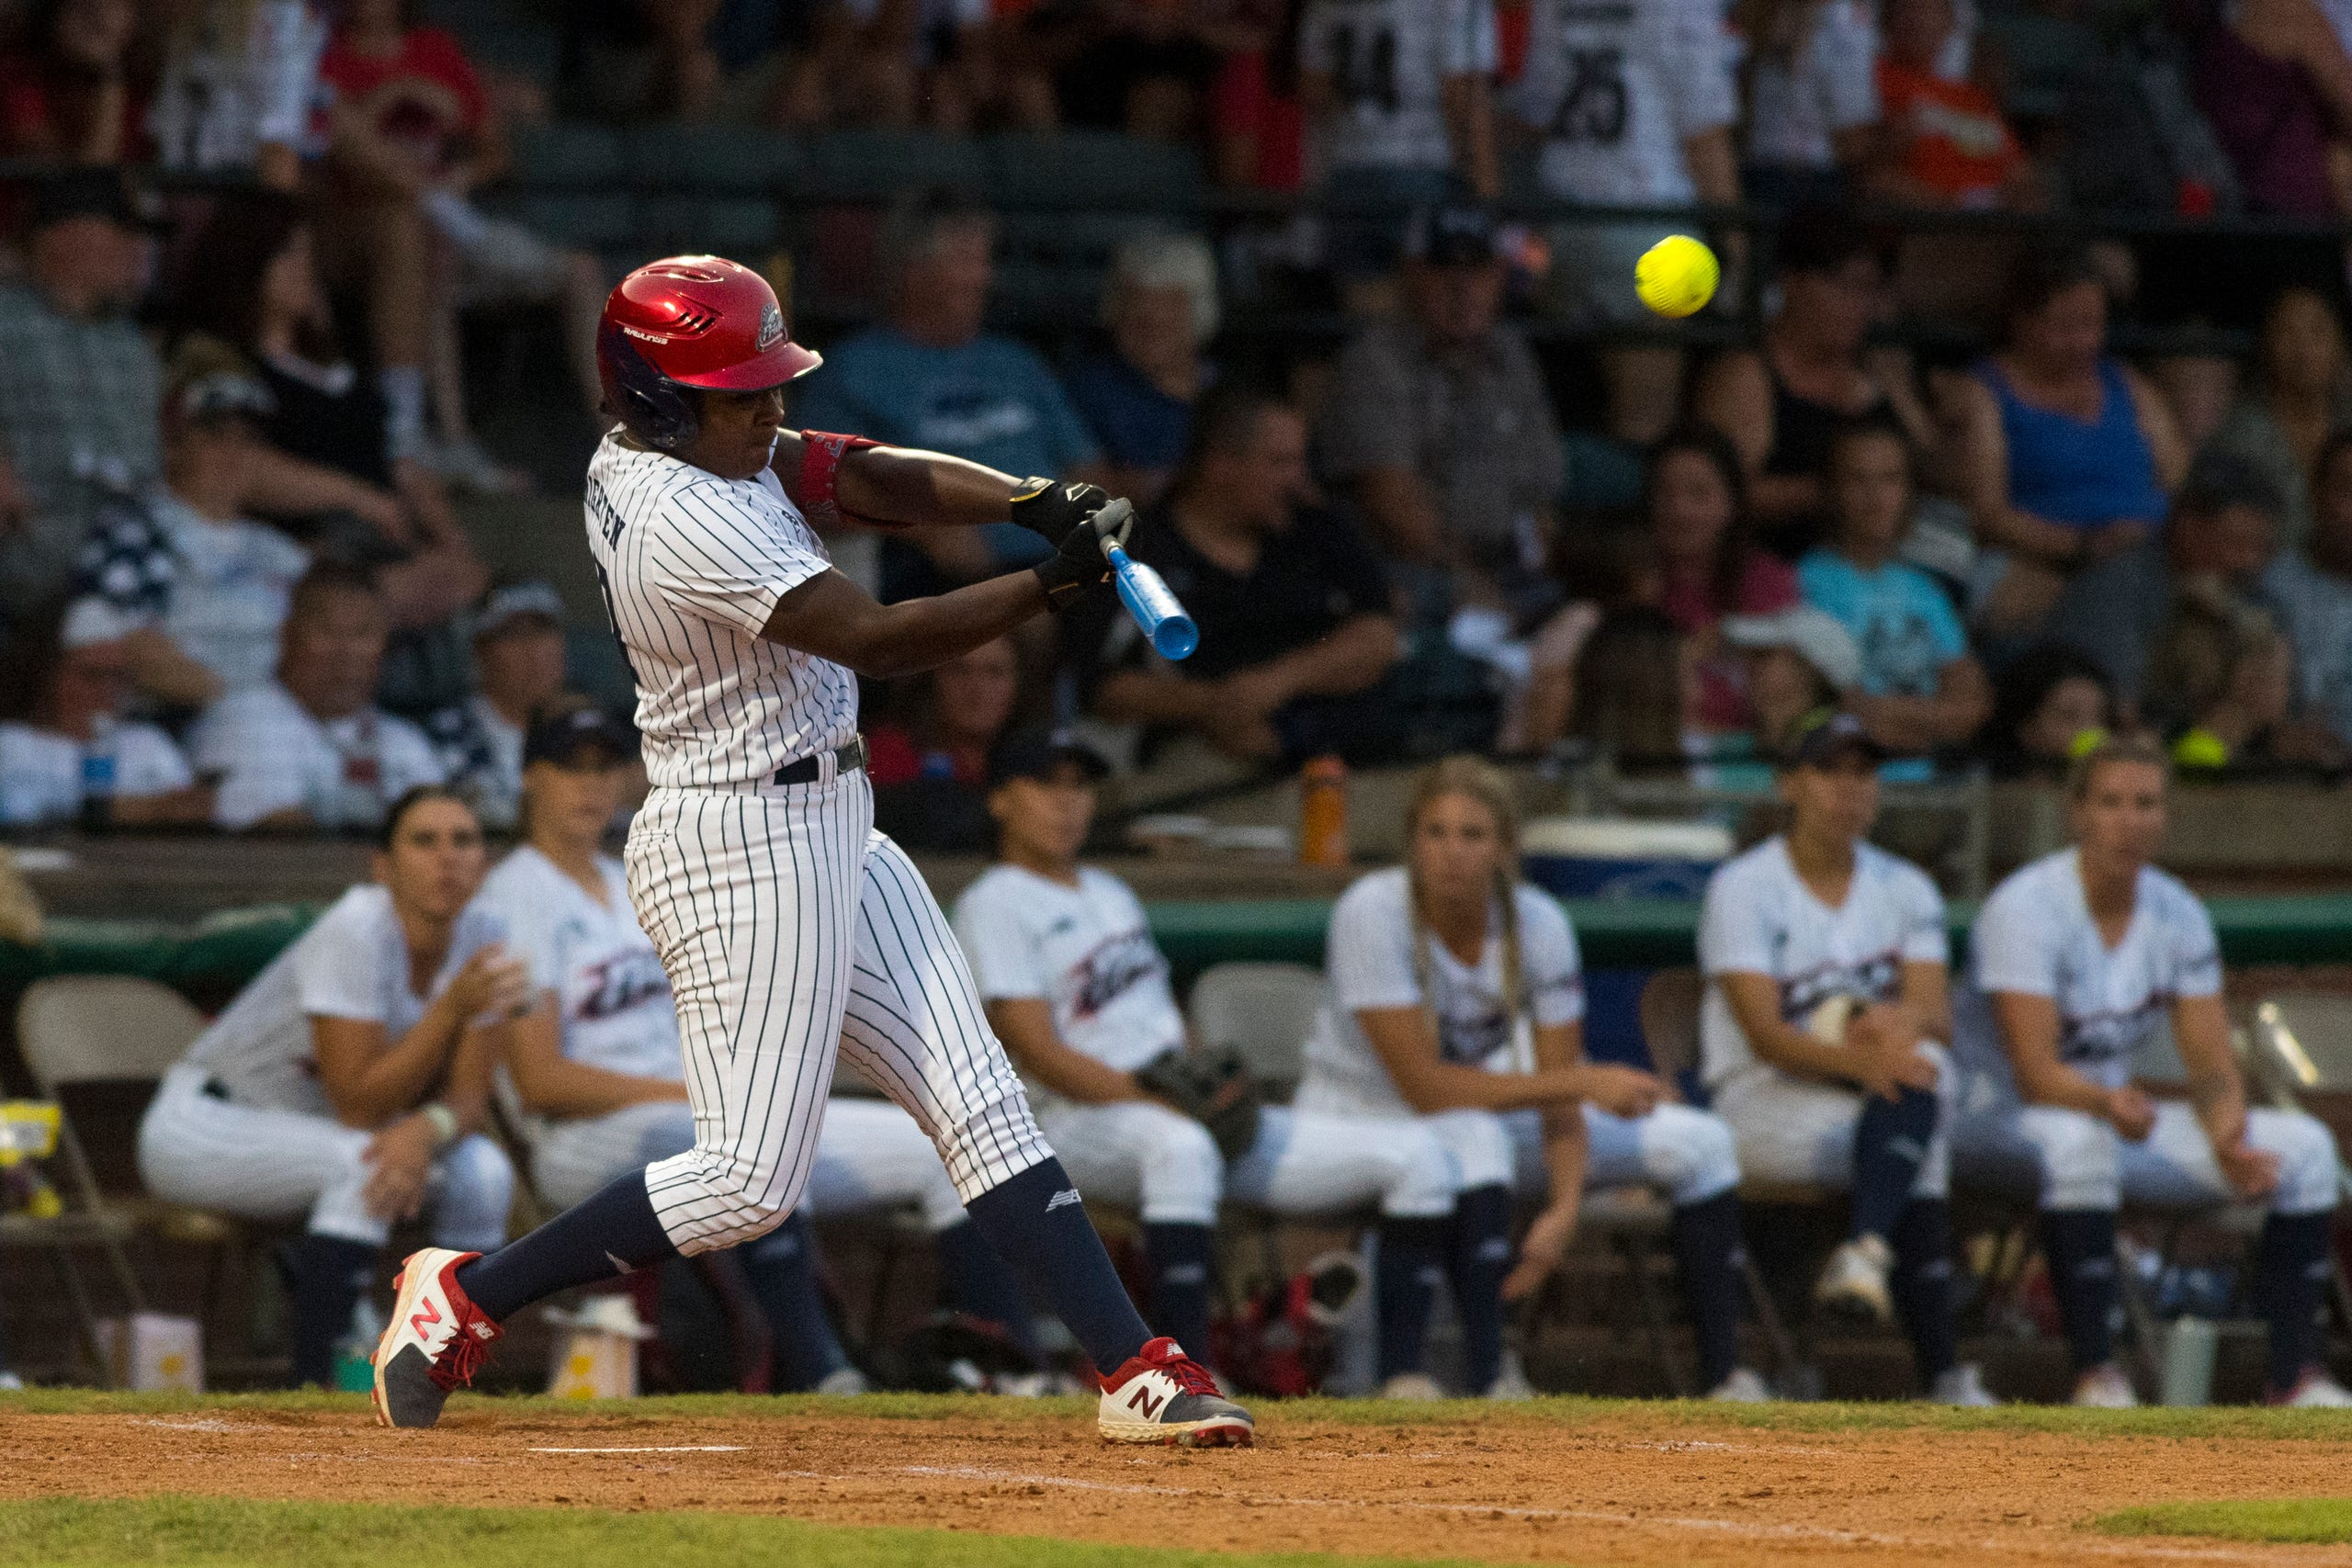 USSSA Pride's Shay Knighten (17) hits a homer as the USSSA Pride takes on Team Florida in an exhibition game at Bosse Field in Evansville, Ind., Wednesday evening, July 14, 2021.